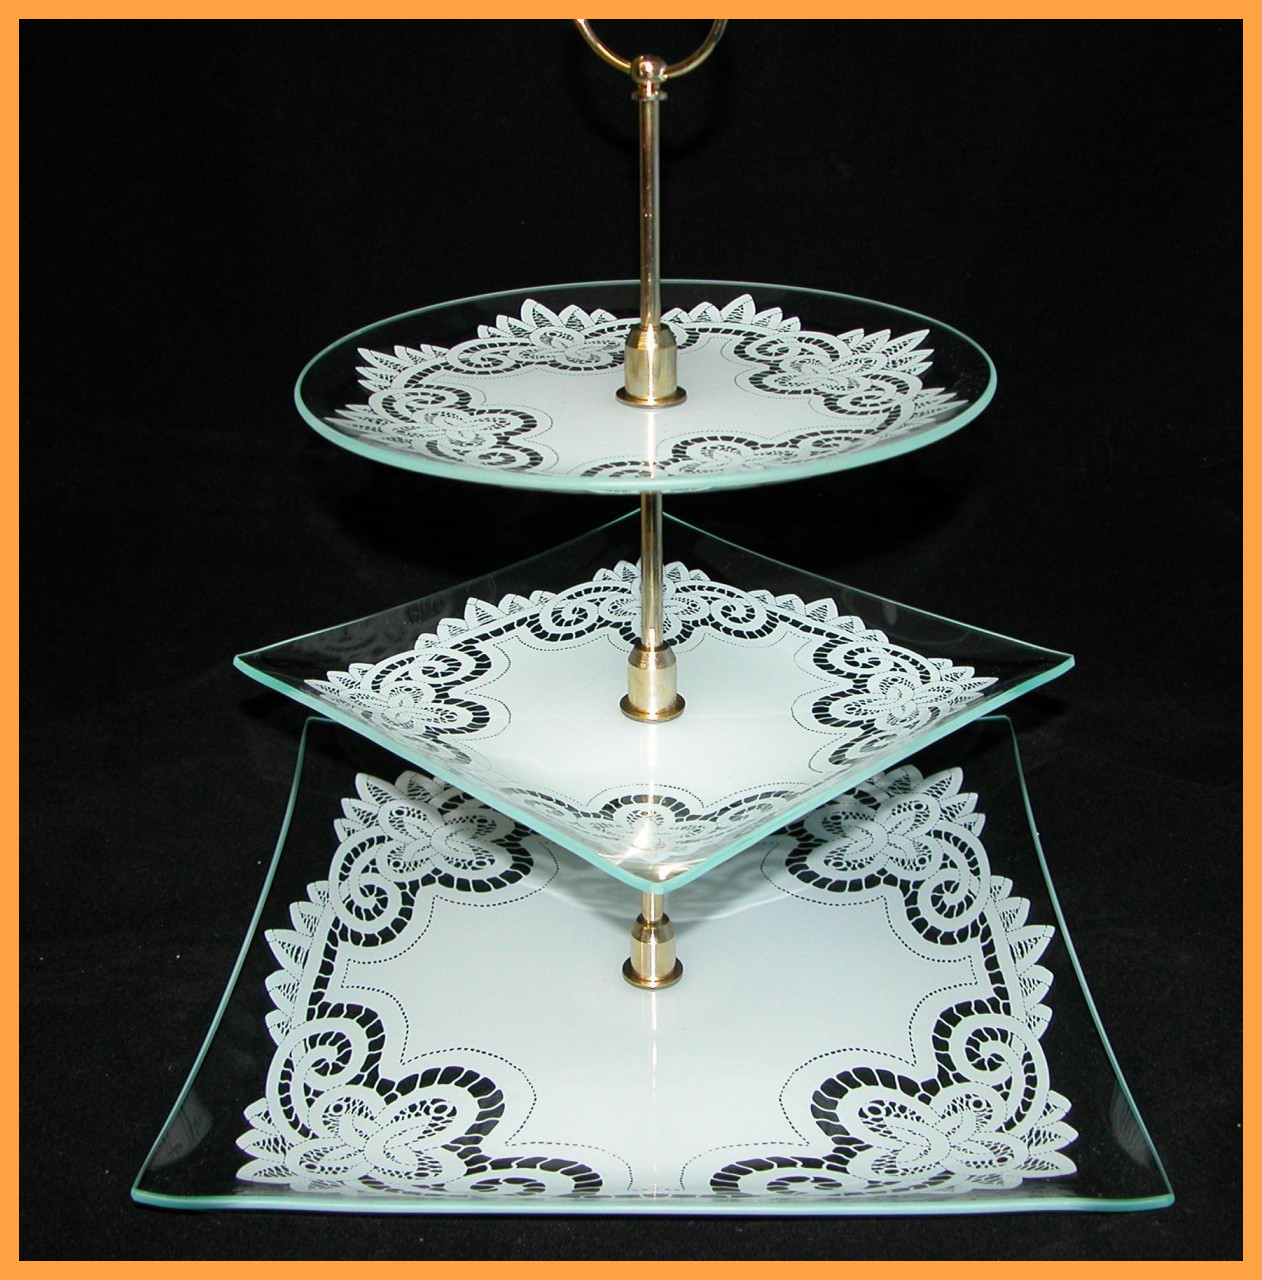 3 Piece Tray Set - 13